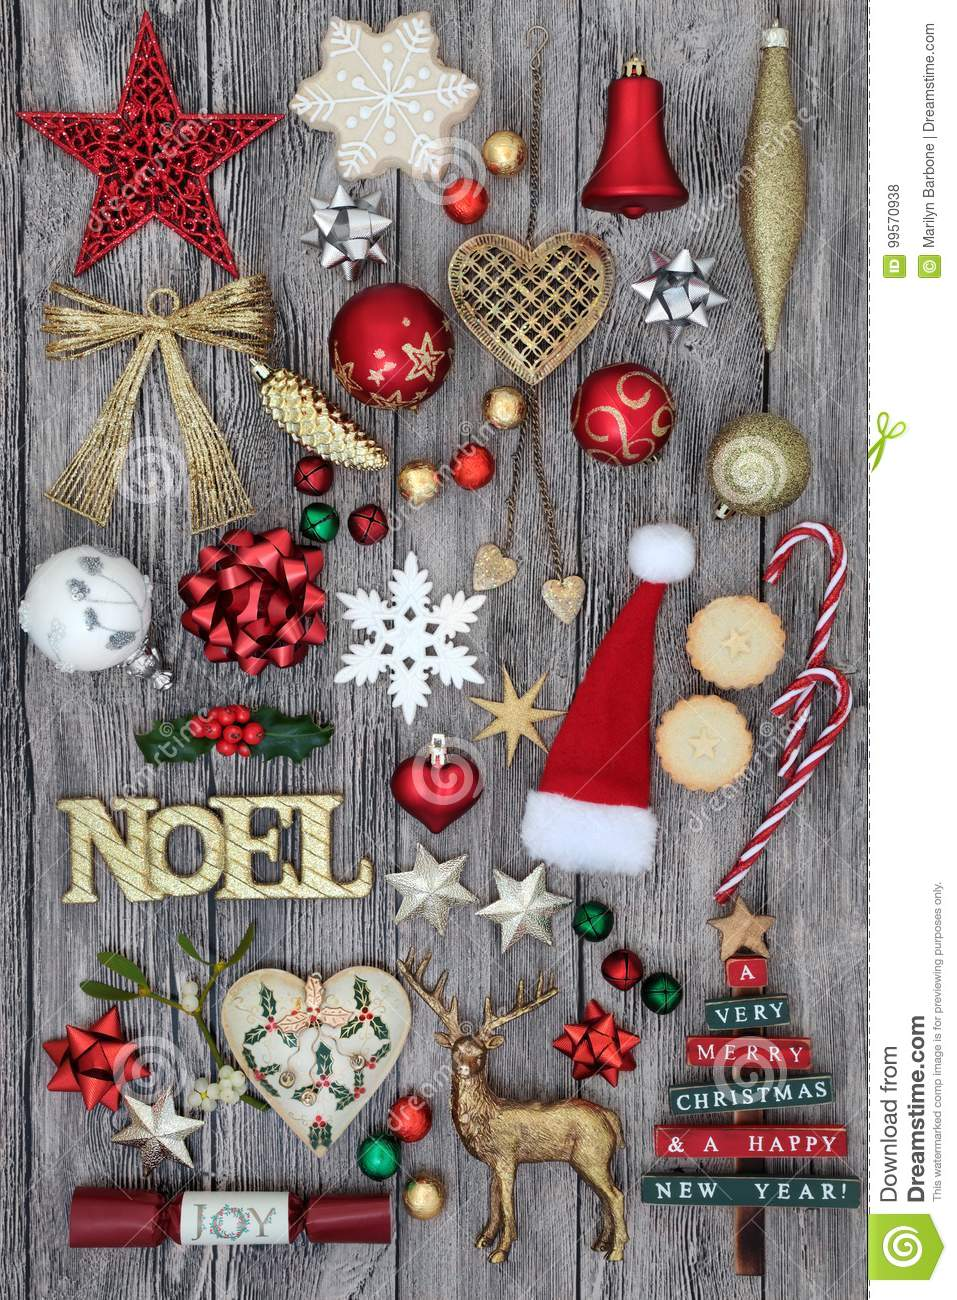 Decoration Biscuit Noel.Christmas Noel Sign And Decorations Stock Photo Image Of